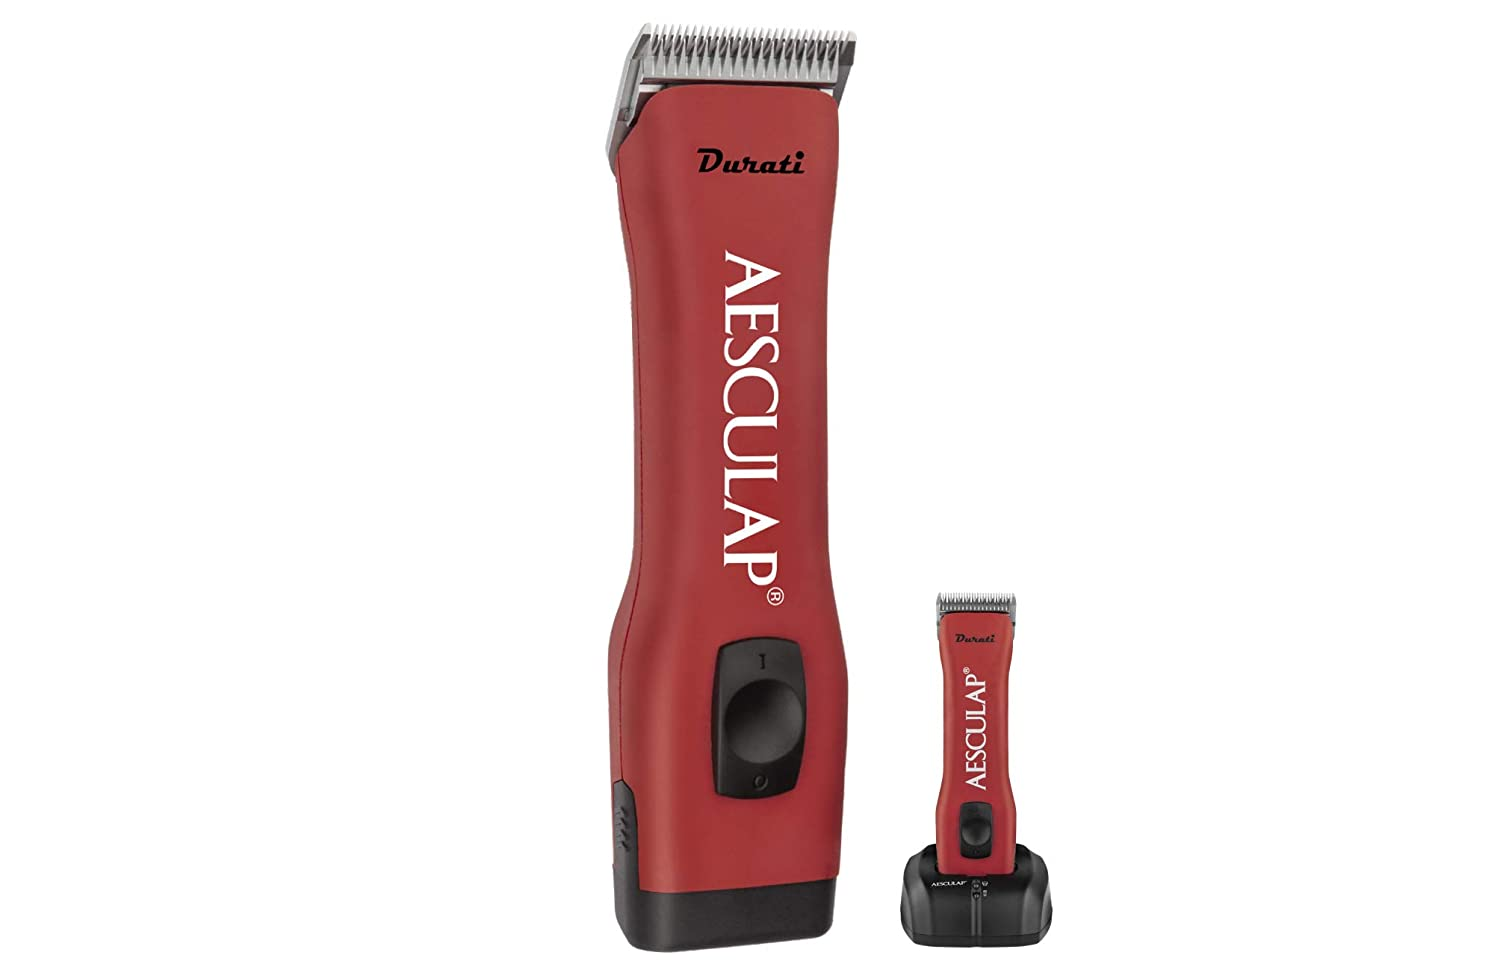 Aesculap Durati Cordless Dog Grooming Clipper